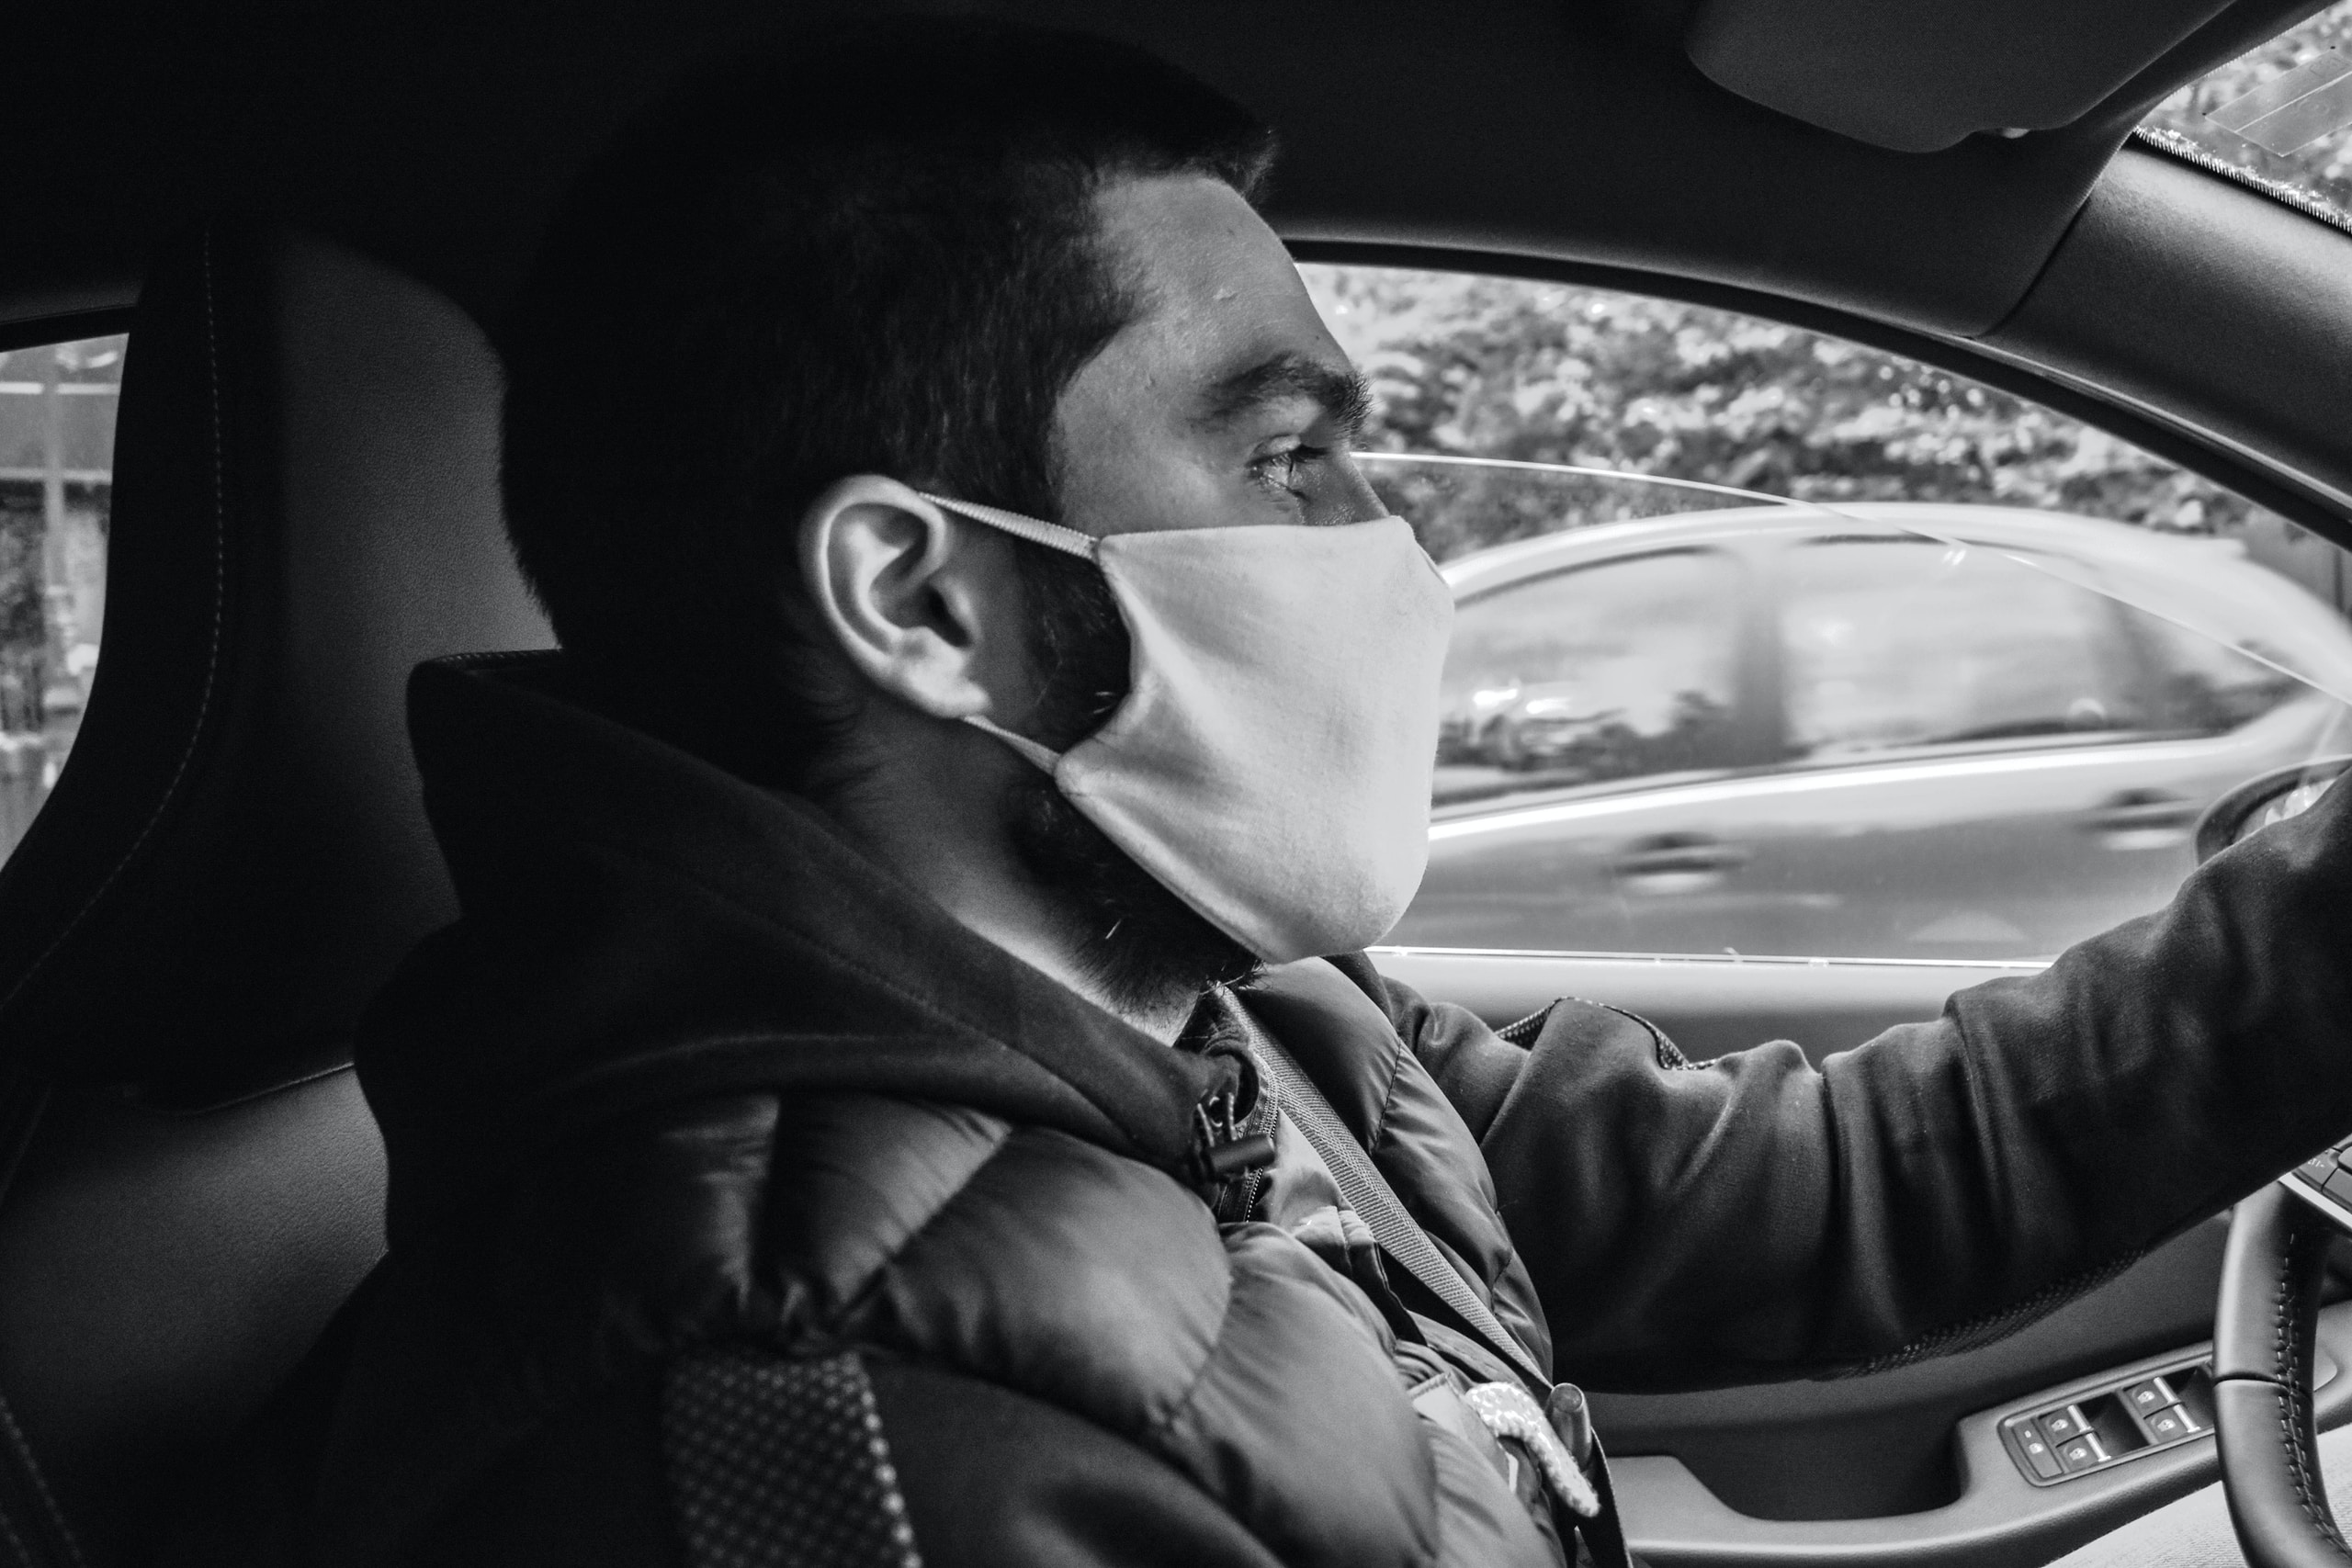 grayscale photo of man in jacket driving car